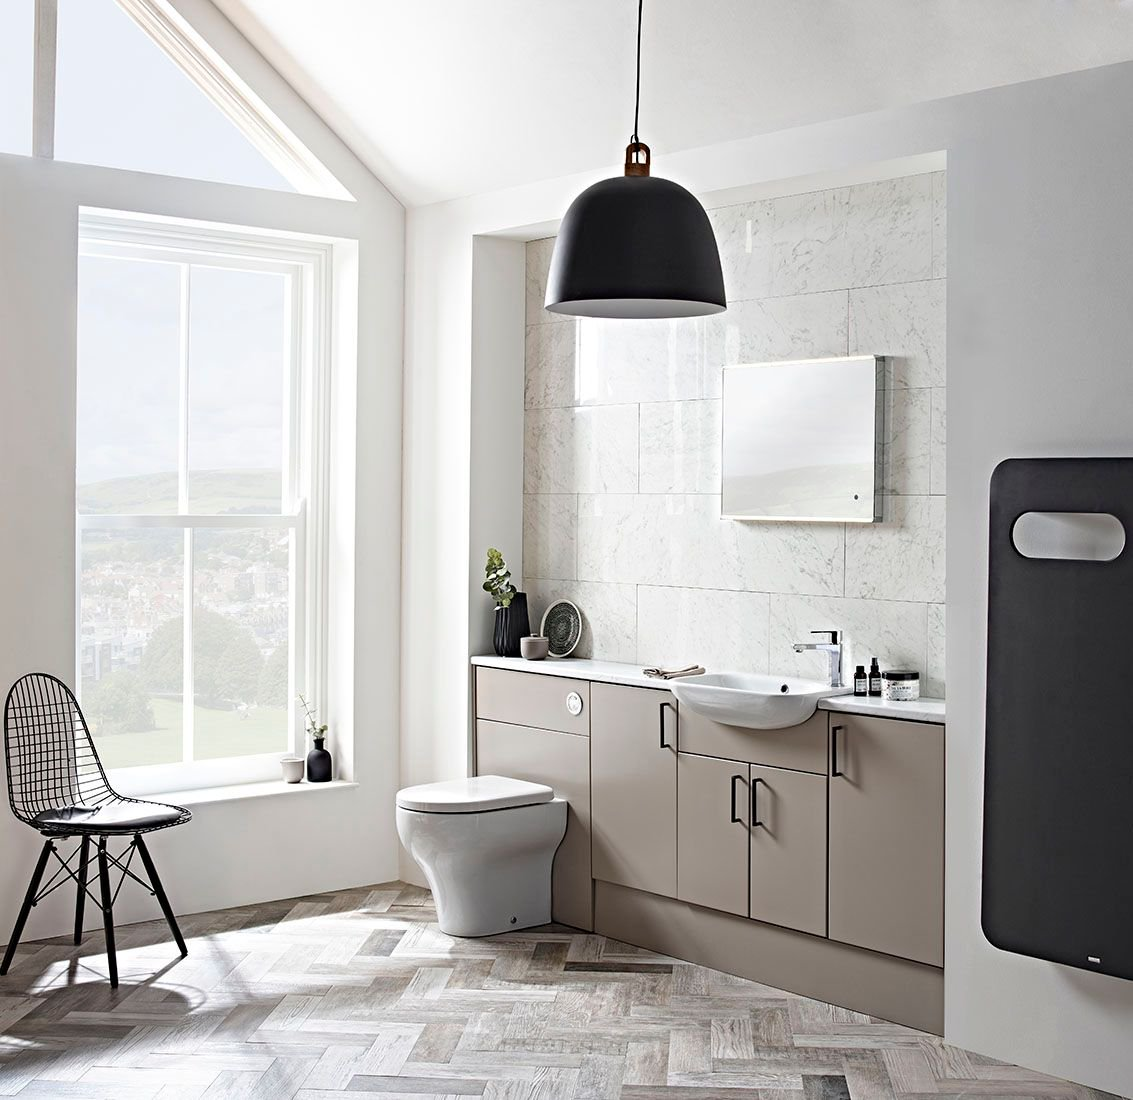 Tecaz bathroom suites - With So Many Colours And Combinations Available It Gives You Somewhere To Hide All Those Potions And Lotions Giving You A Clutter Free Bathroom